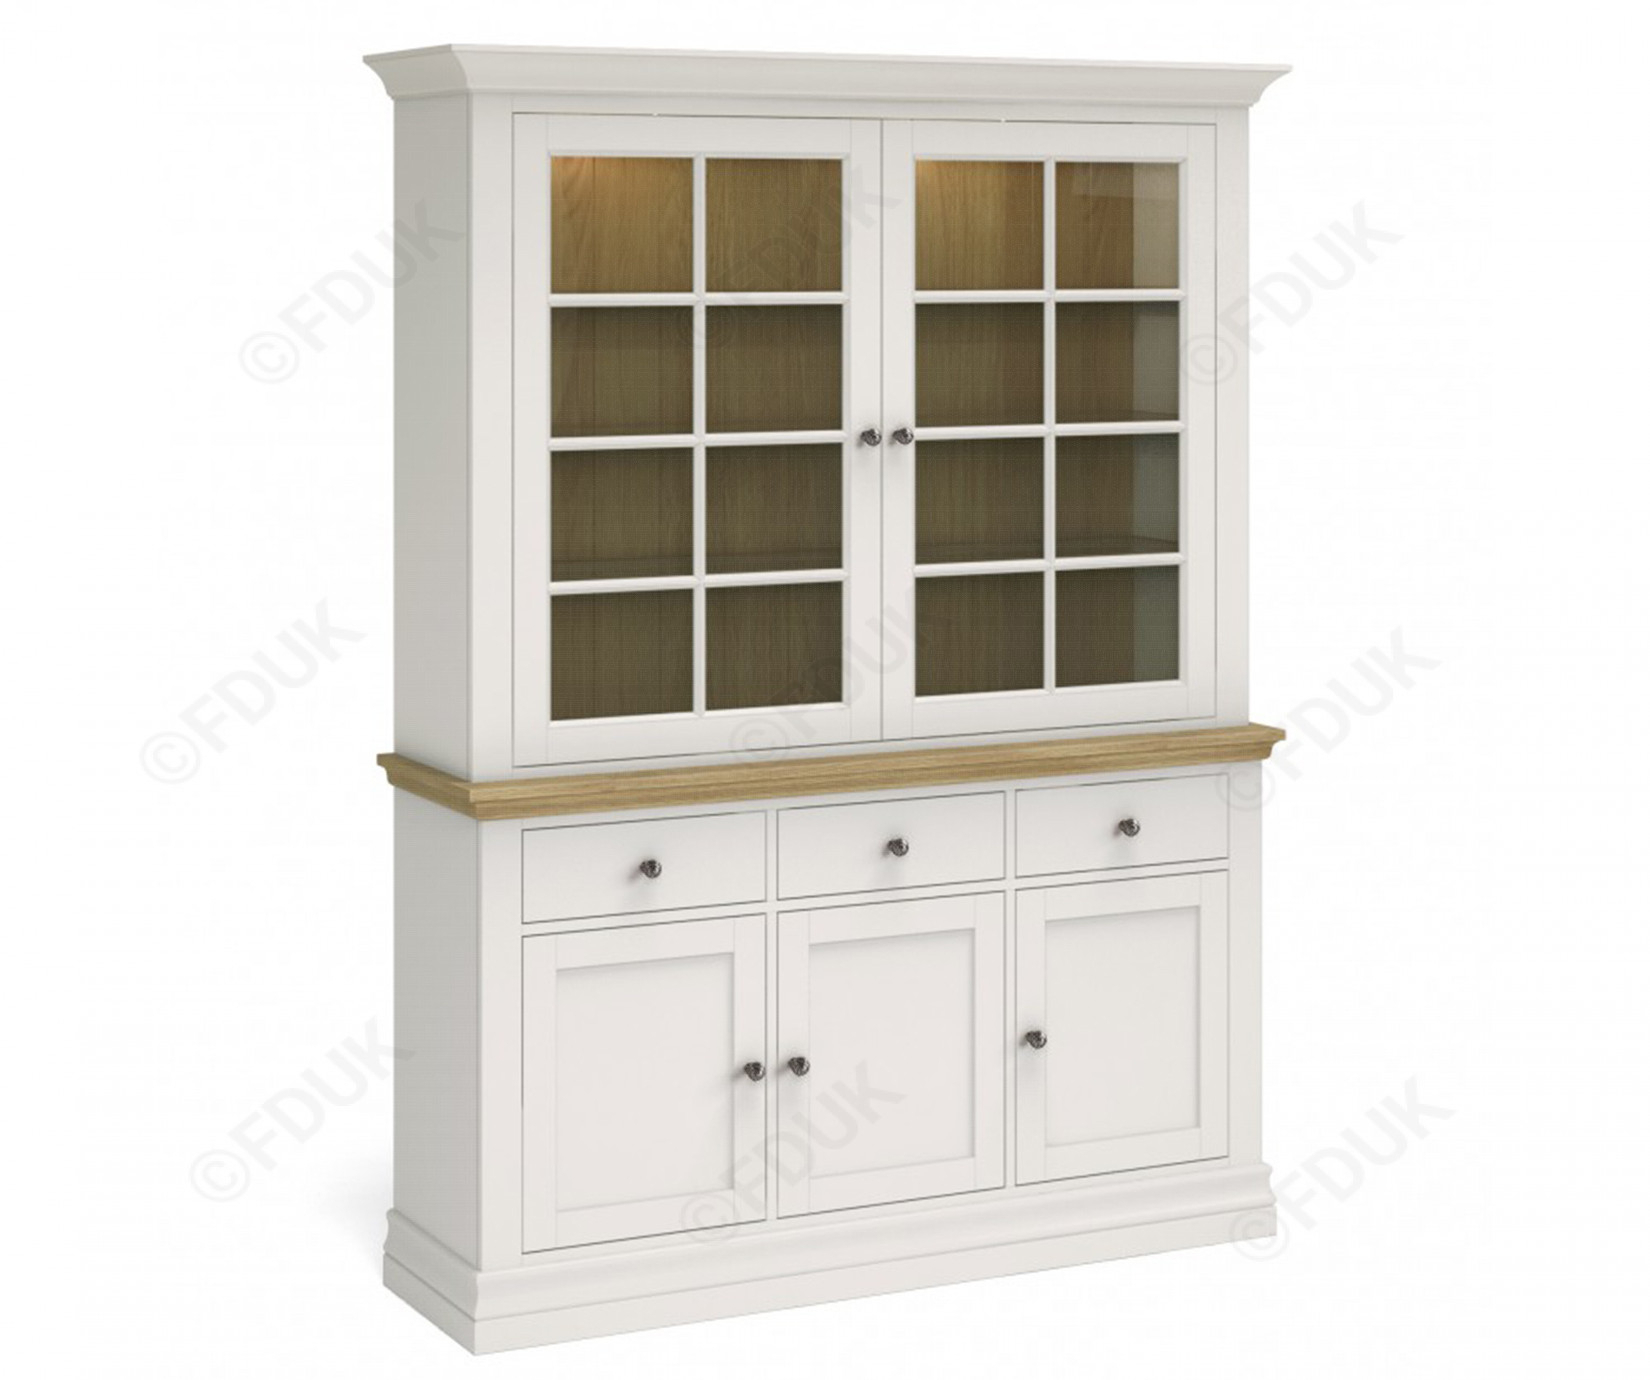 Corndell Annecy Large Sideboard With Dresser Top Fduk Best Price Guarantee We Will Beat Our Competitors Price! Give Our Sales Team A Call On 0116 235 Pertaining To Latest Annecy Sideboards (View 10 of 20)